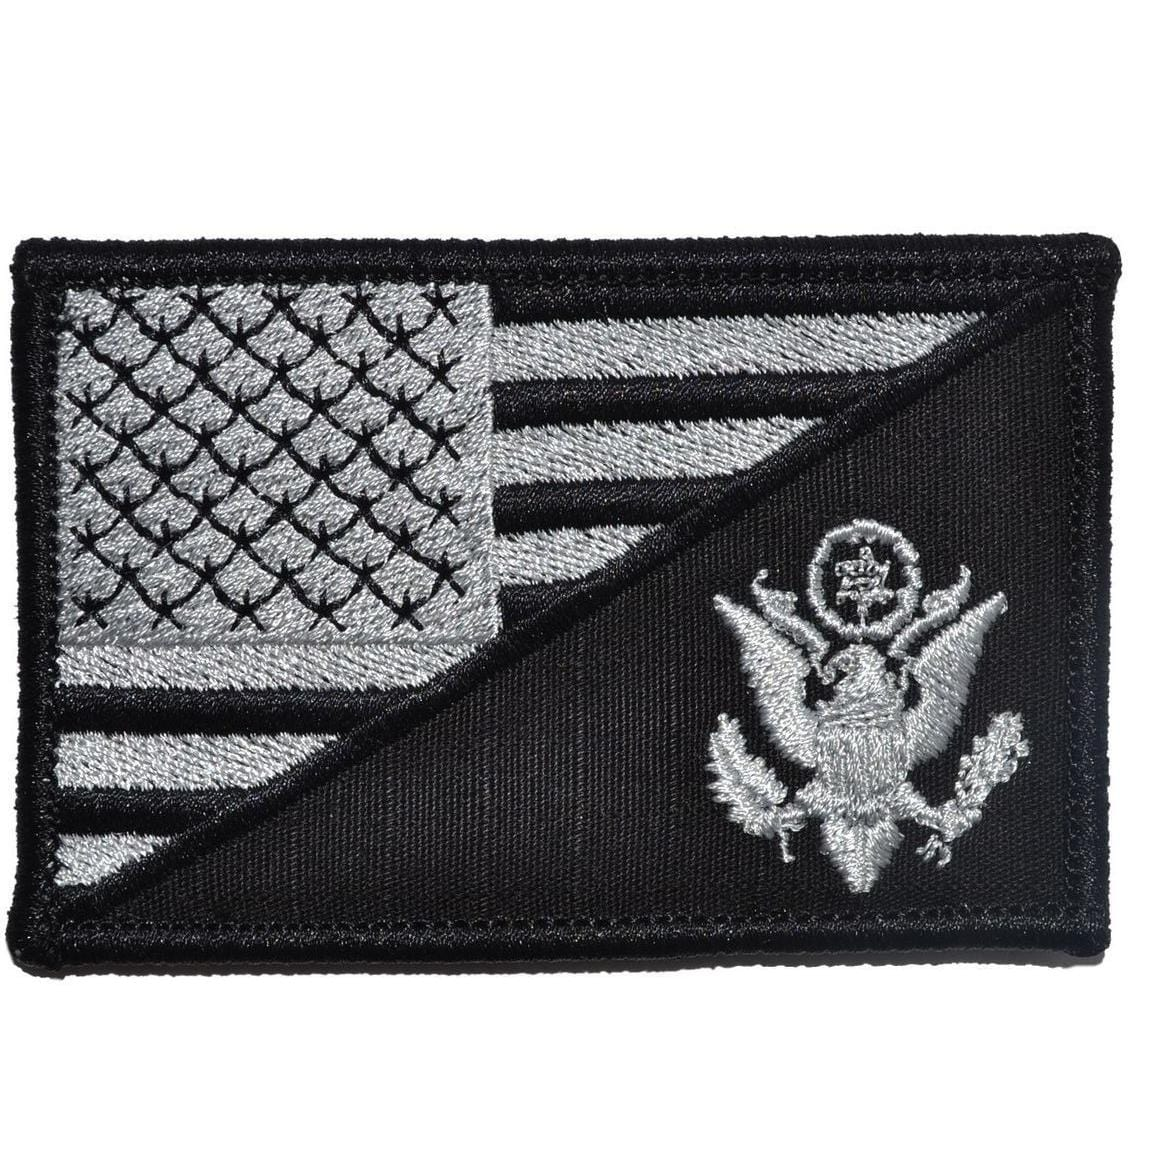 Tactical Gear Junkie Patches Black US Army Crest USA Flag - 2.25x3.5 Patch